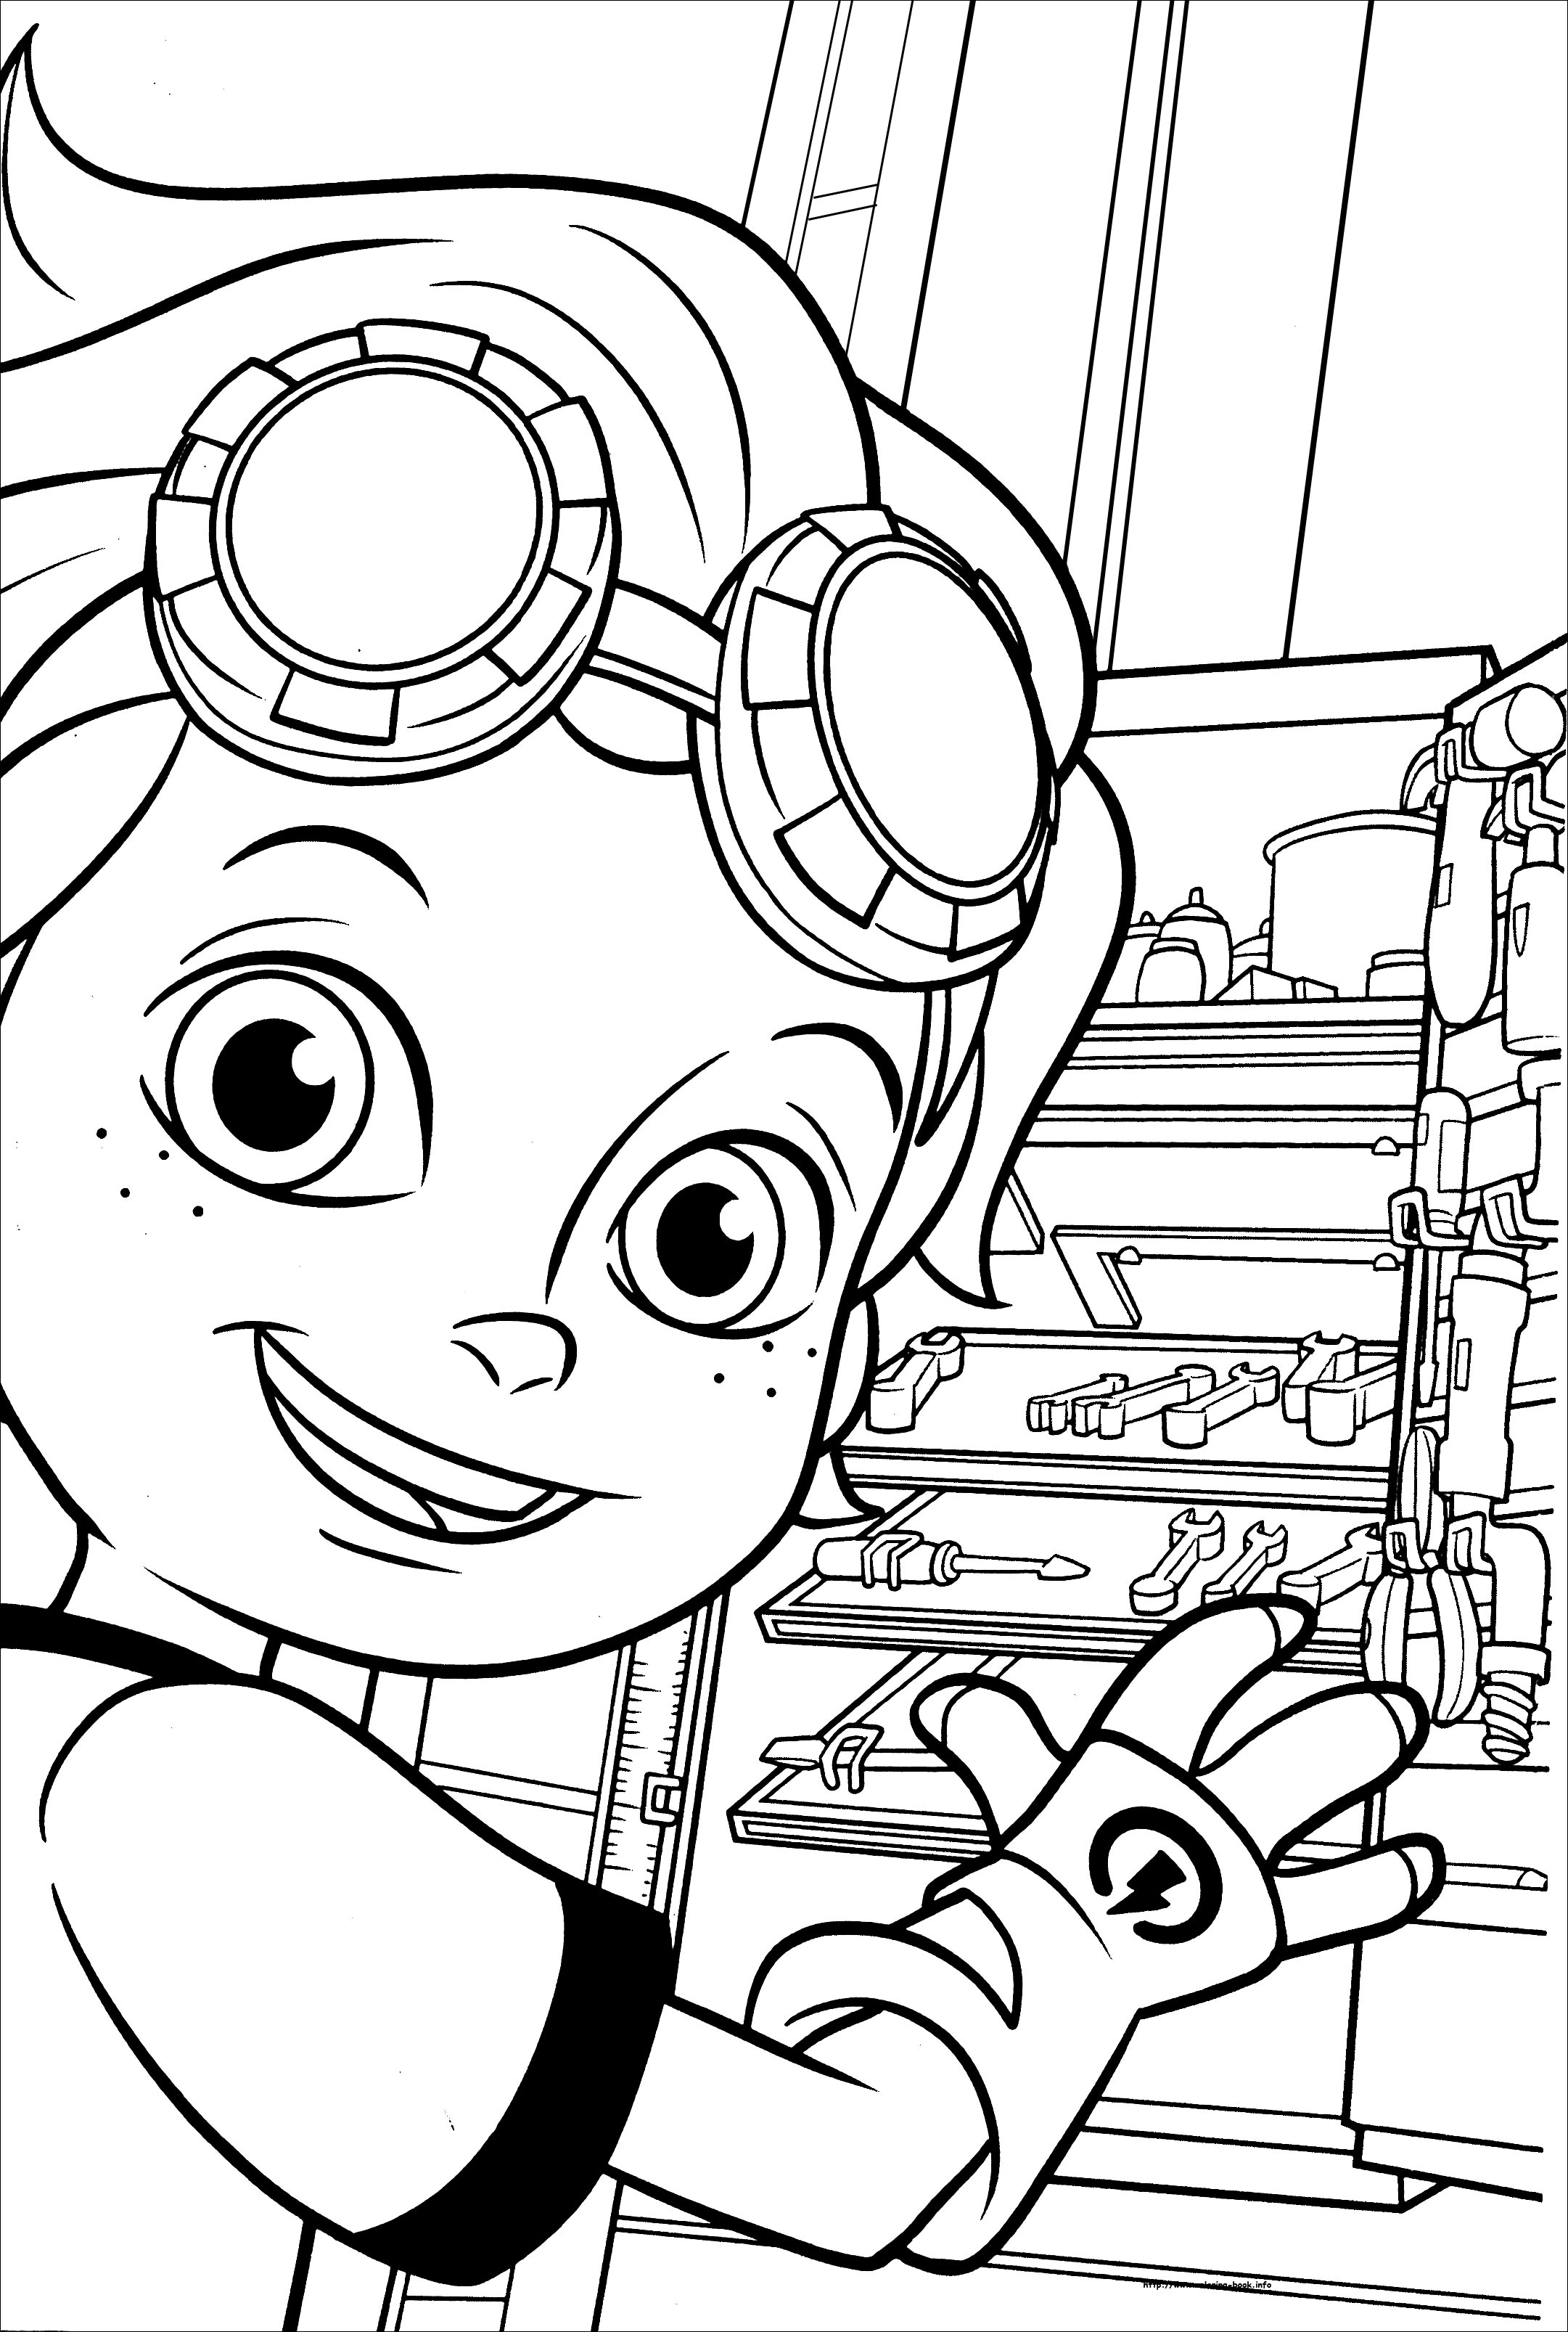 Rusty rivets coloring picture